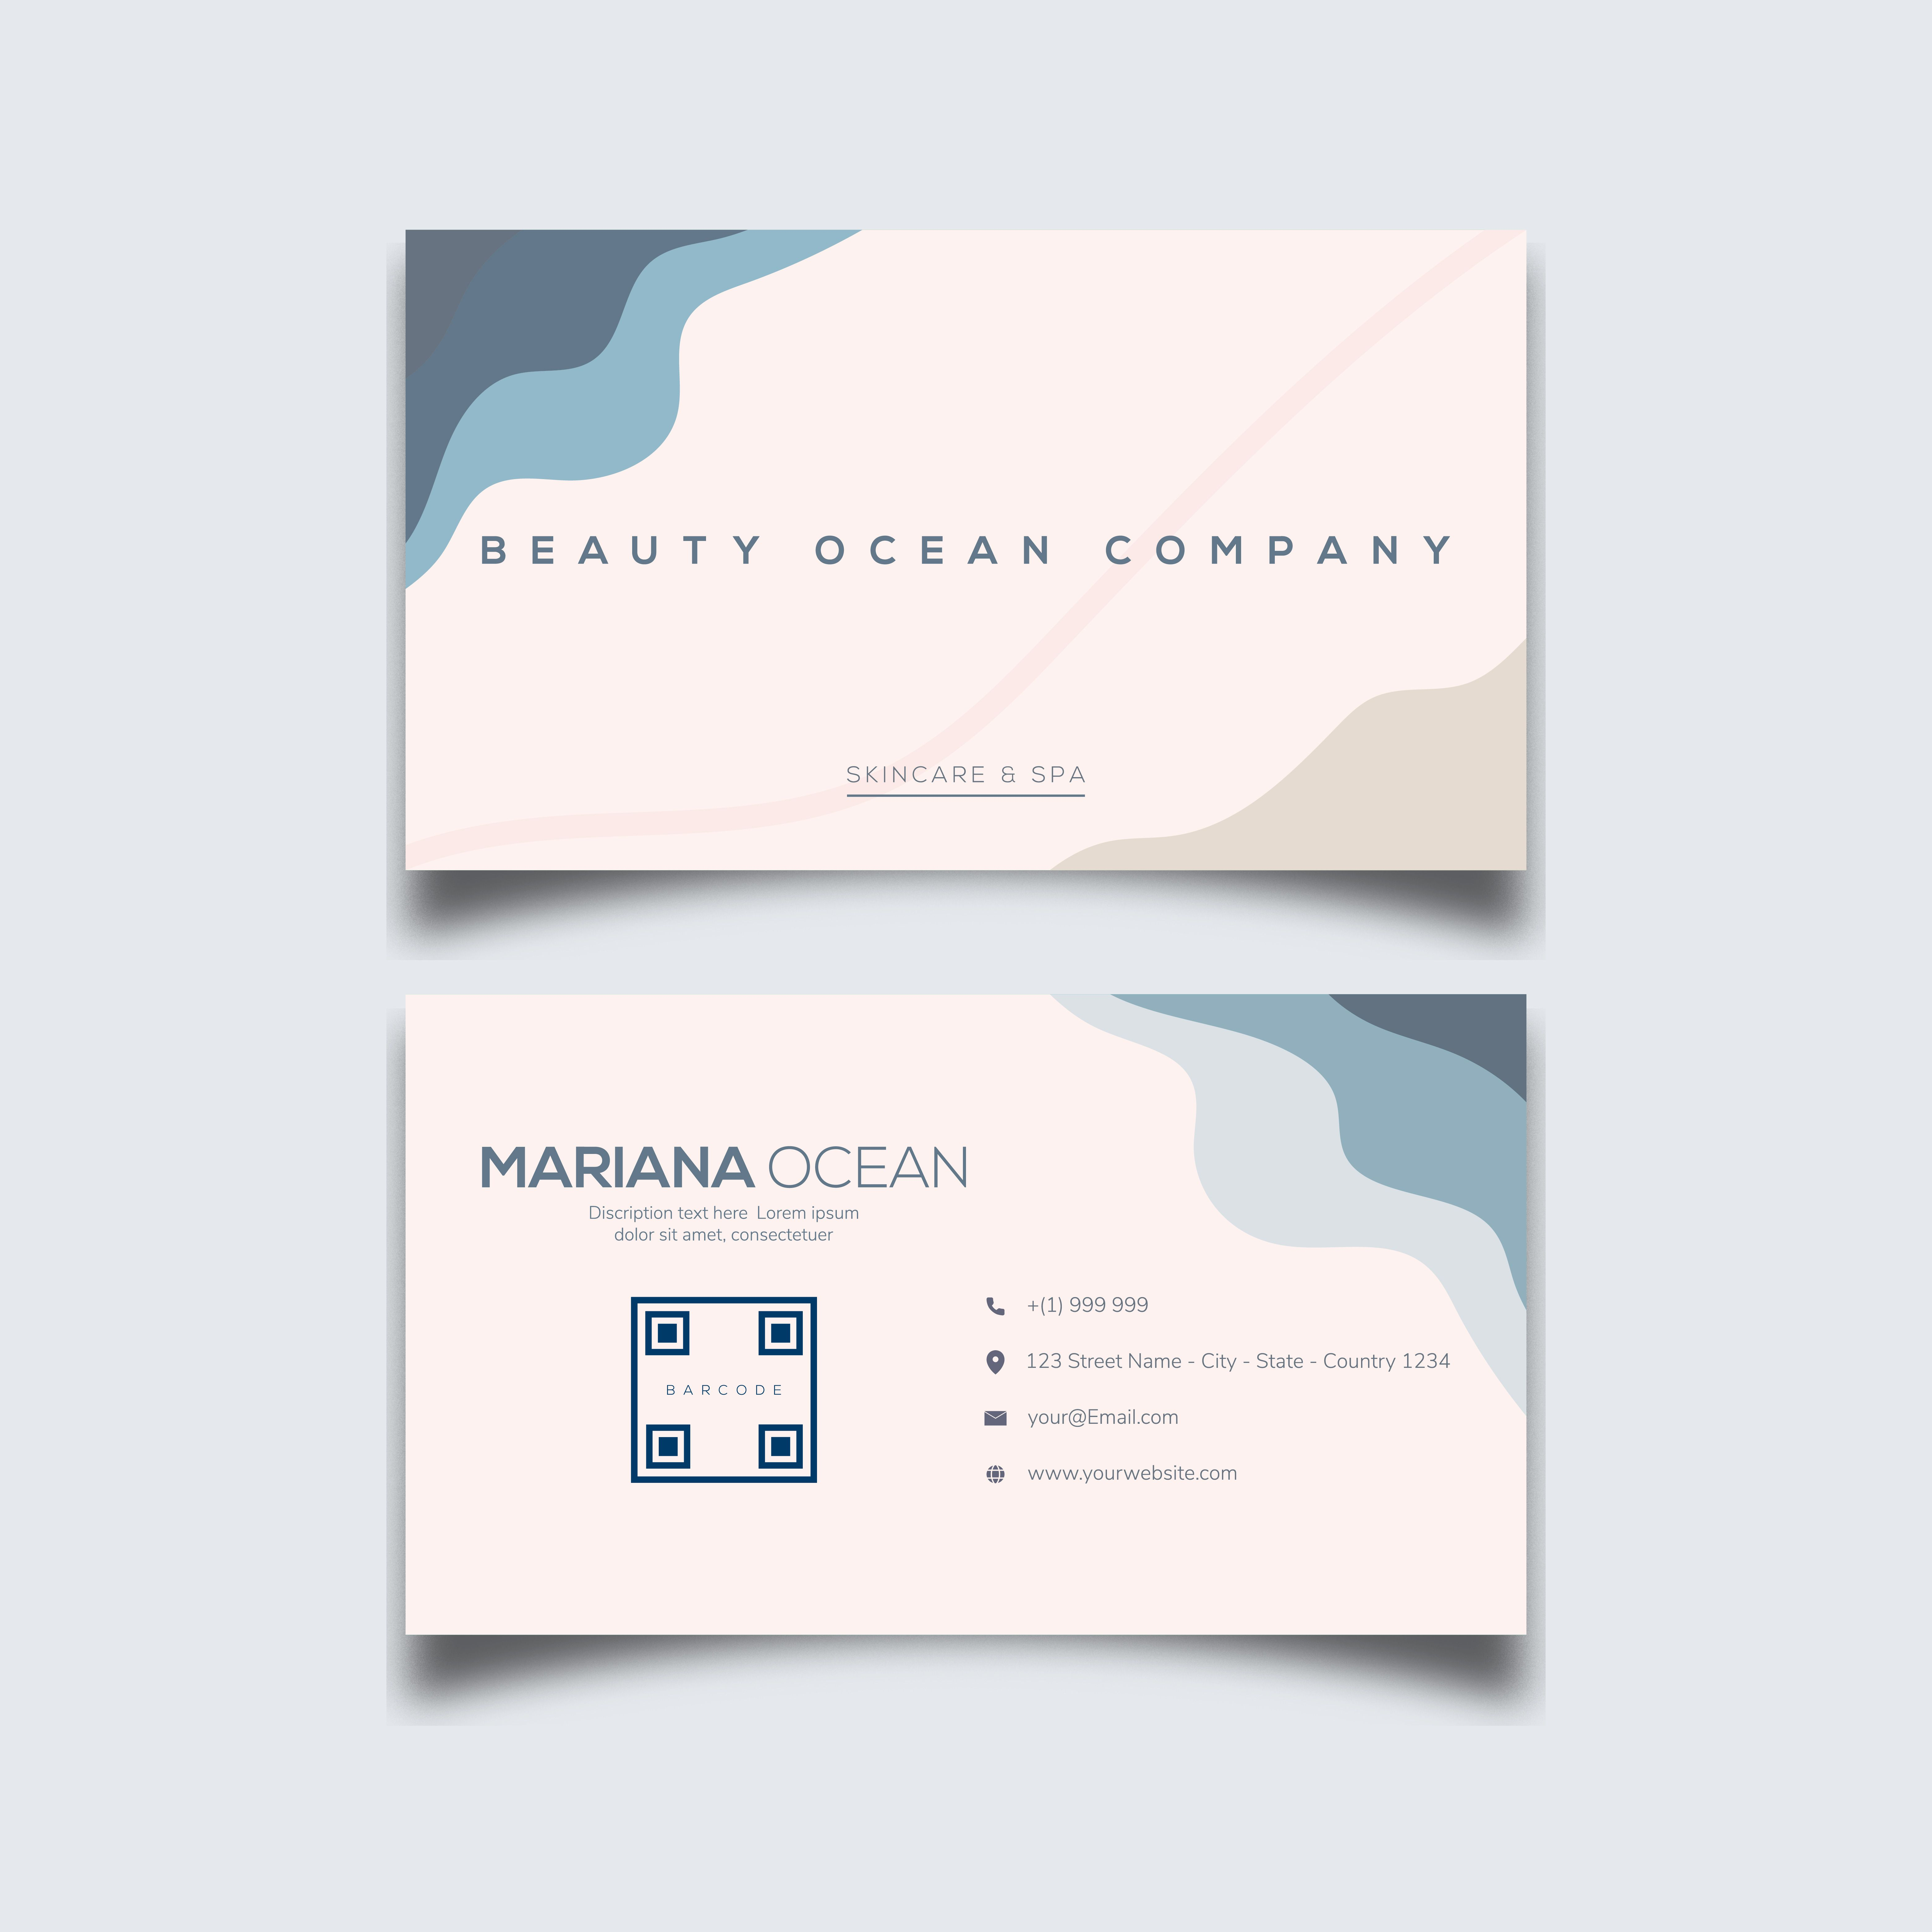 Beauty Simple blue ocean Minimalist Business cardTemplate vector in 2020 |  Fashion business cards, Business cards beauty, Business card design